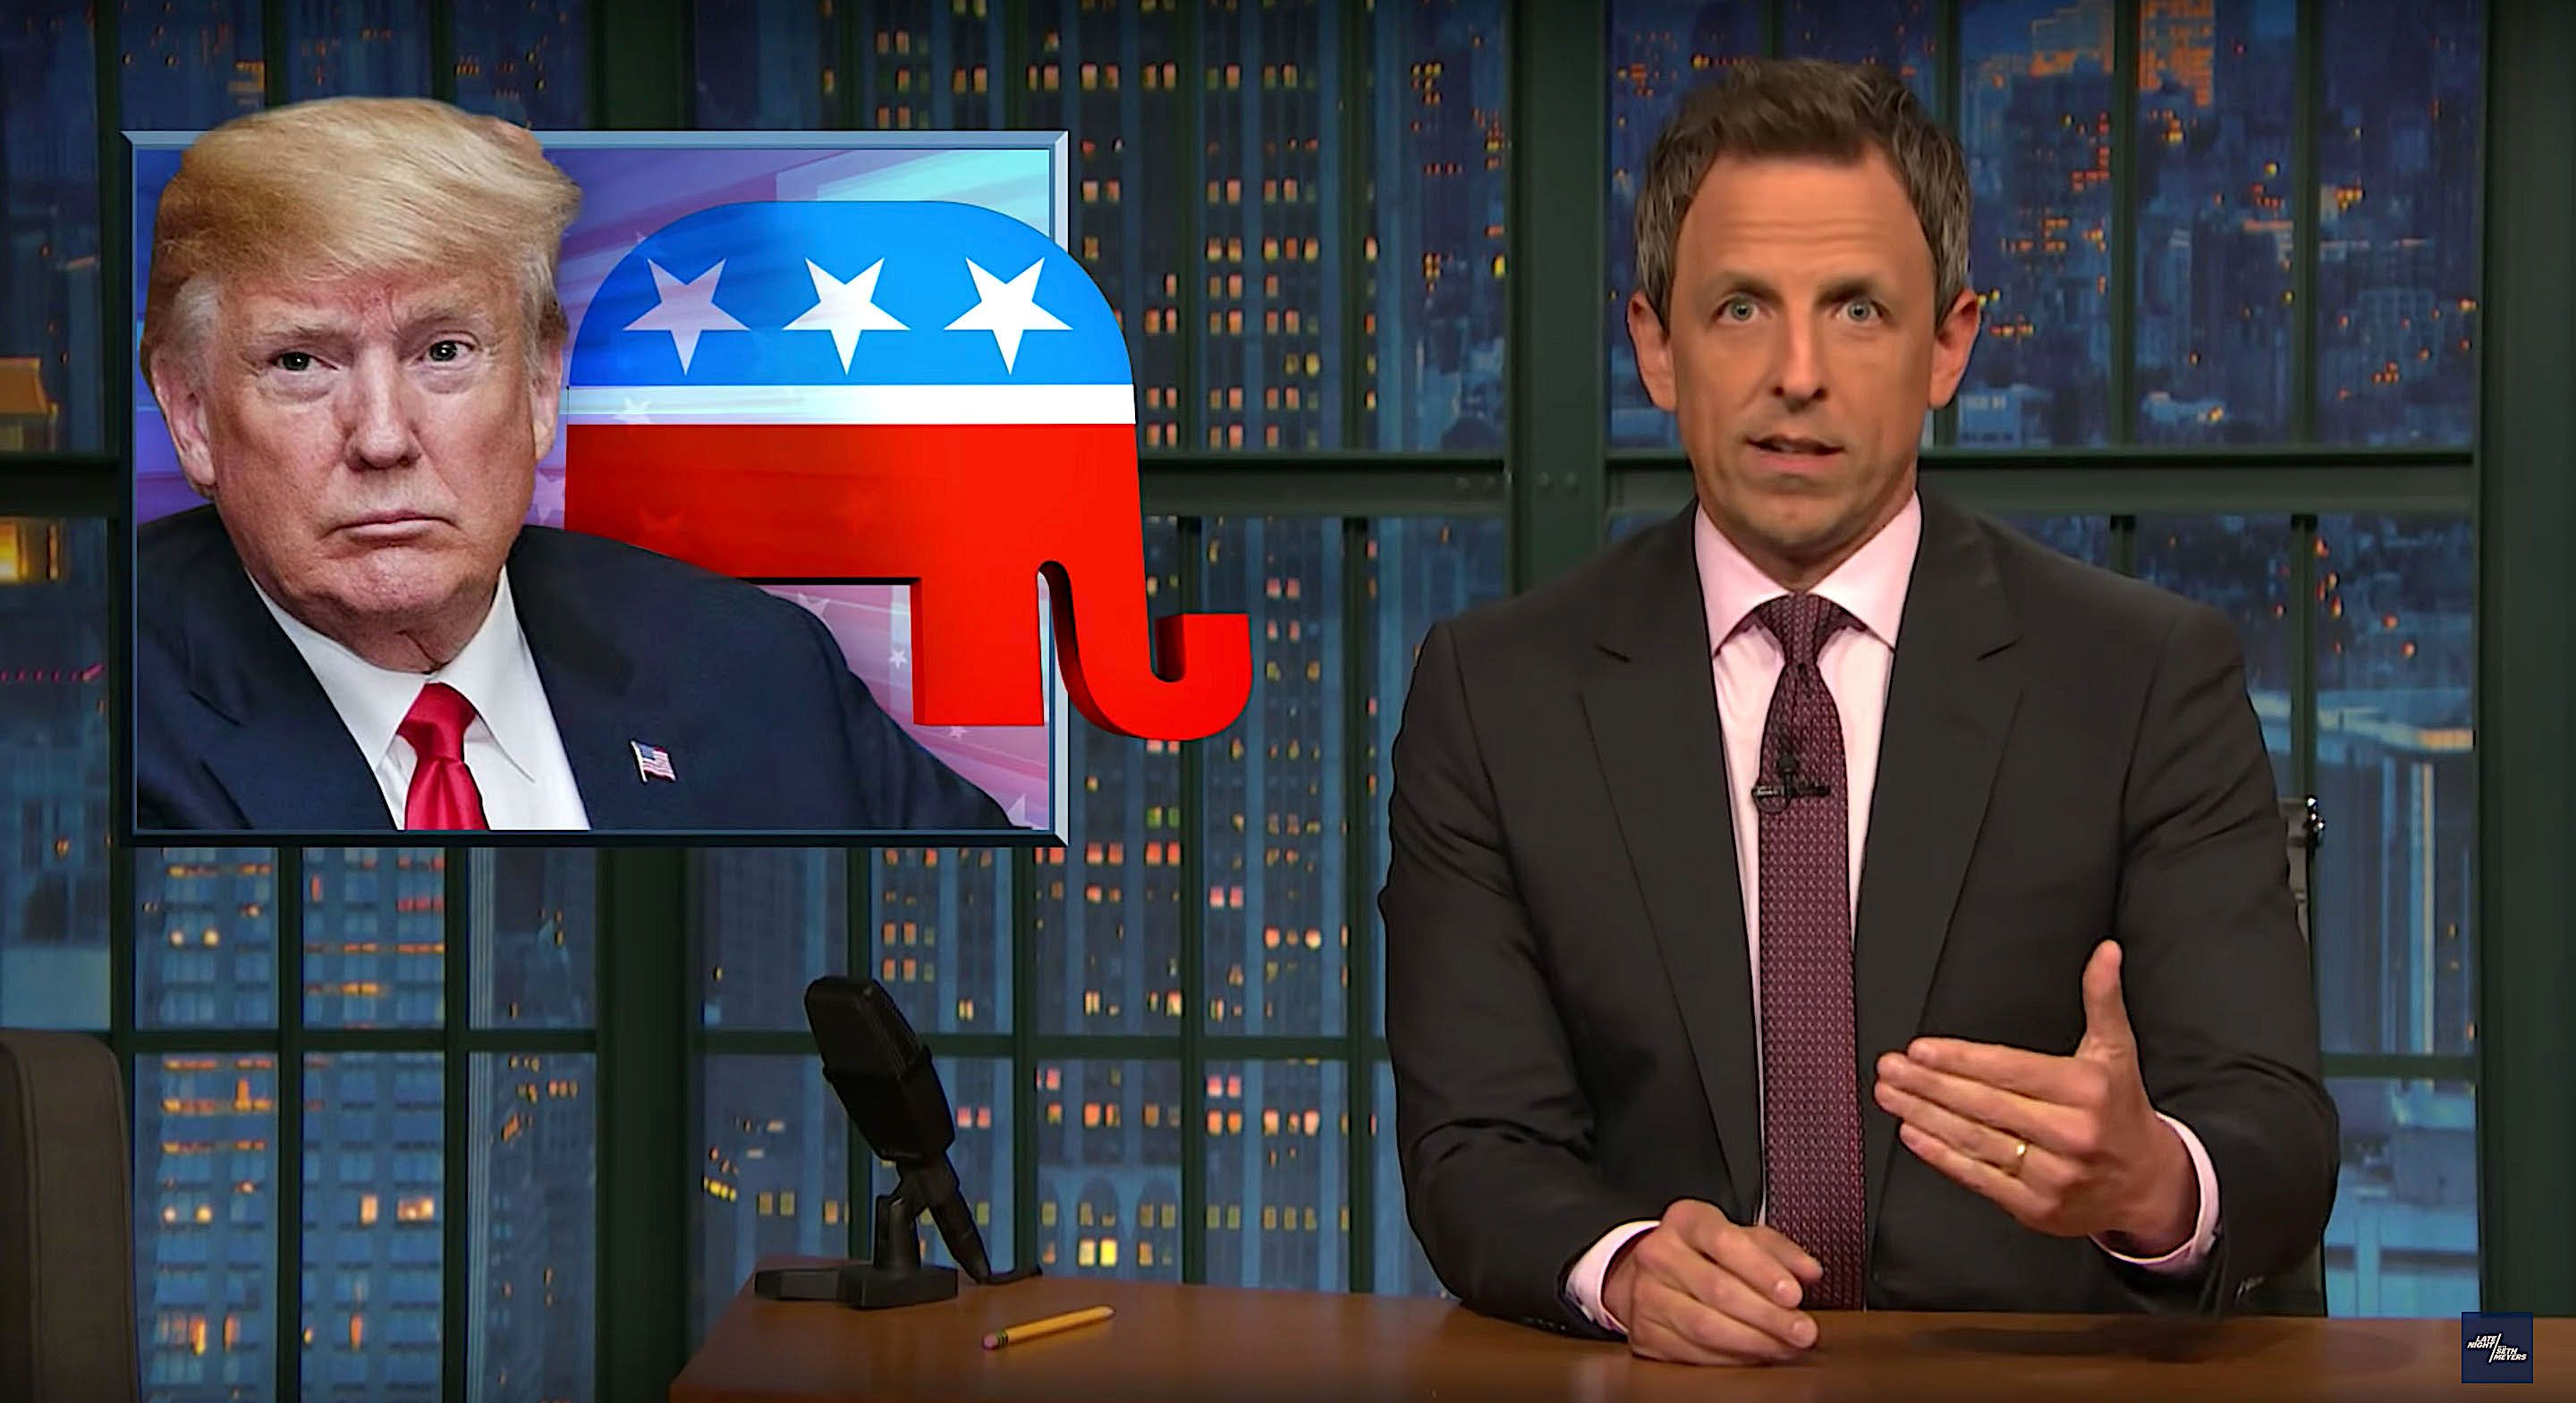 Seth Meyers of Late Night talks about the aftermath of President Donald Trumps family separation policy